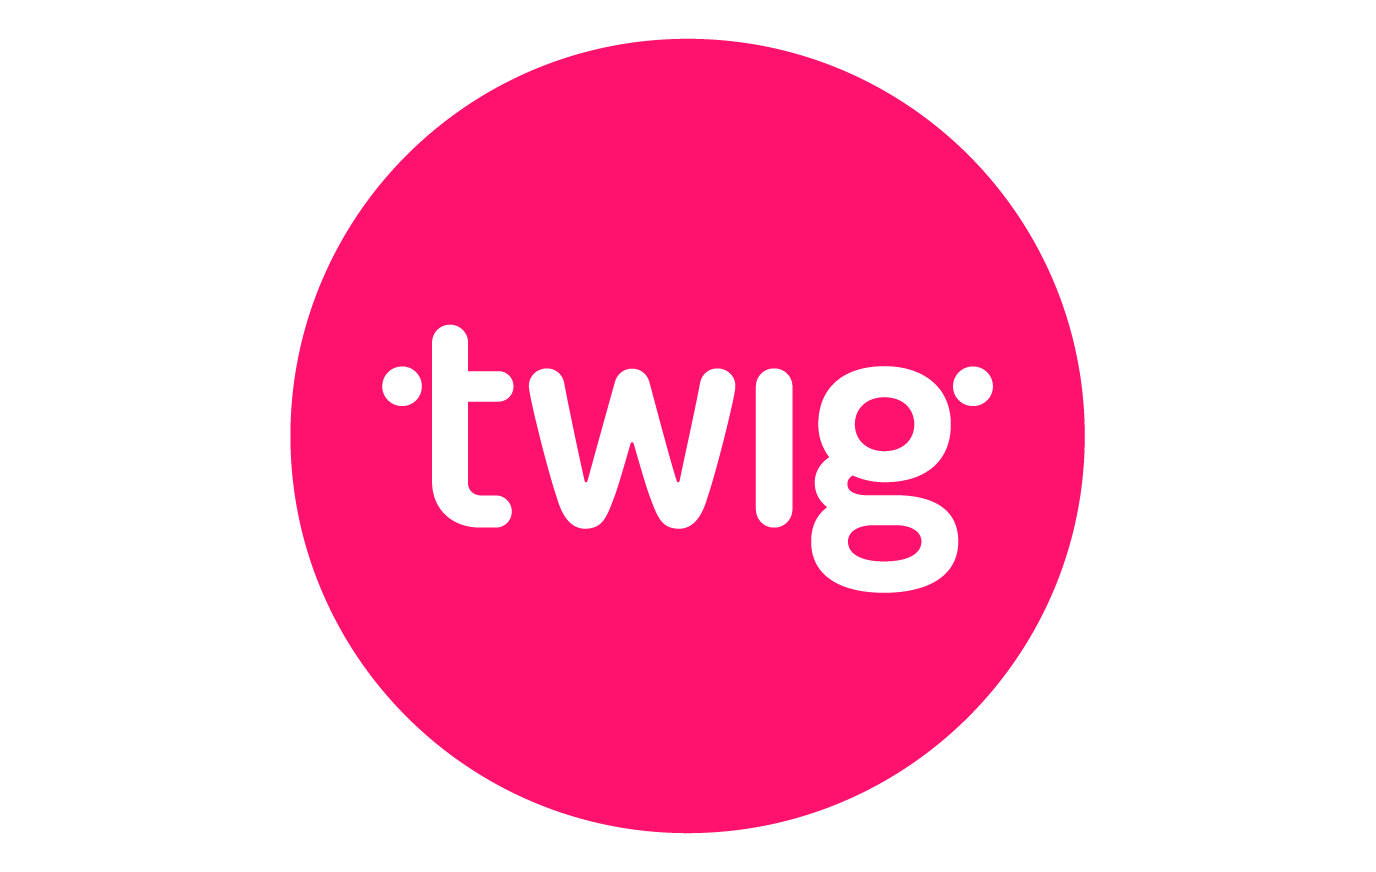 twig-Cover_Logo-32_02-32.png